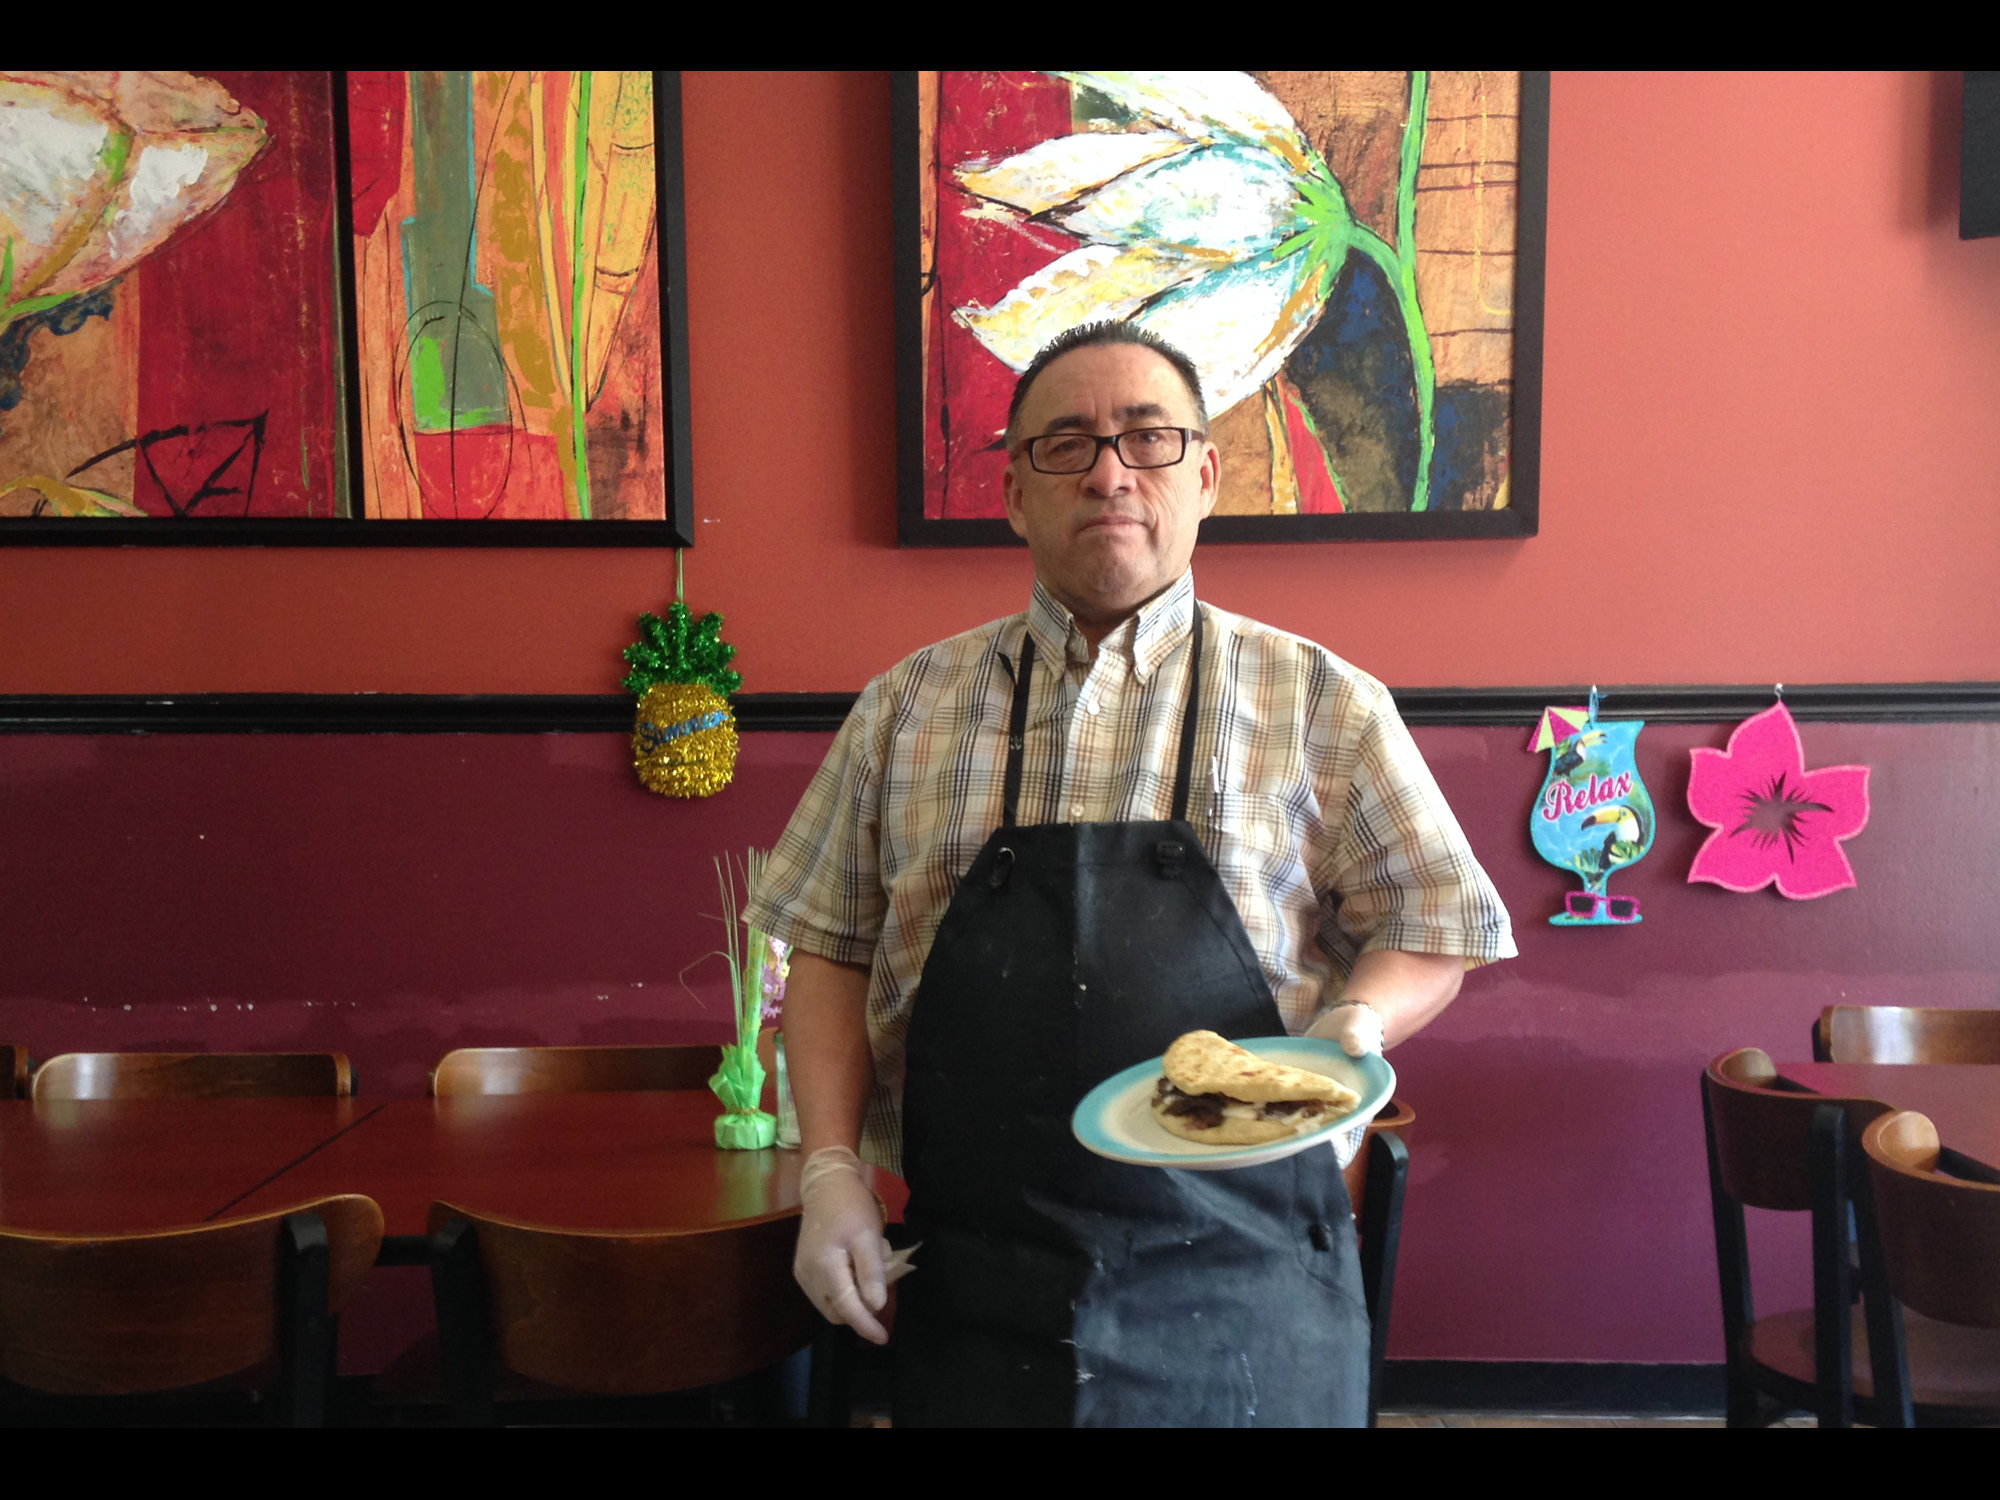 MEET THE BALEADA KING OF CHICAGO, AT CAFE IZALCO